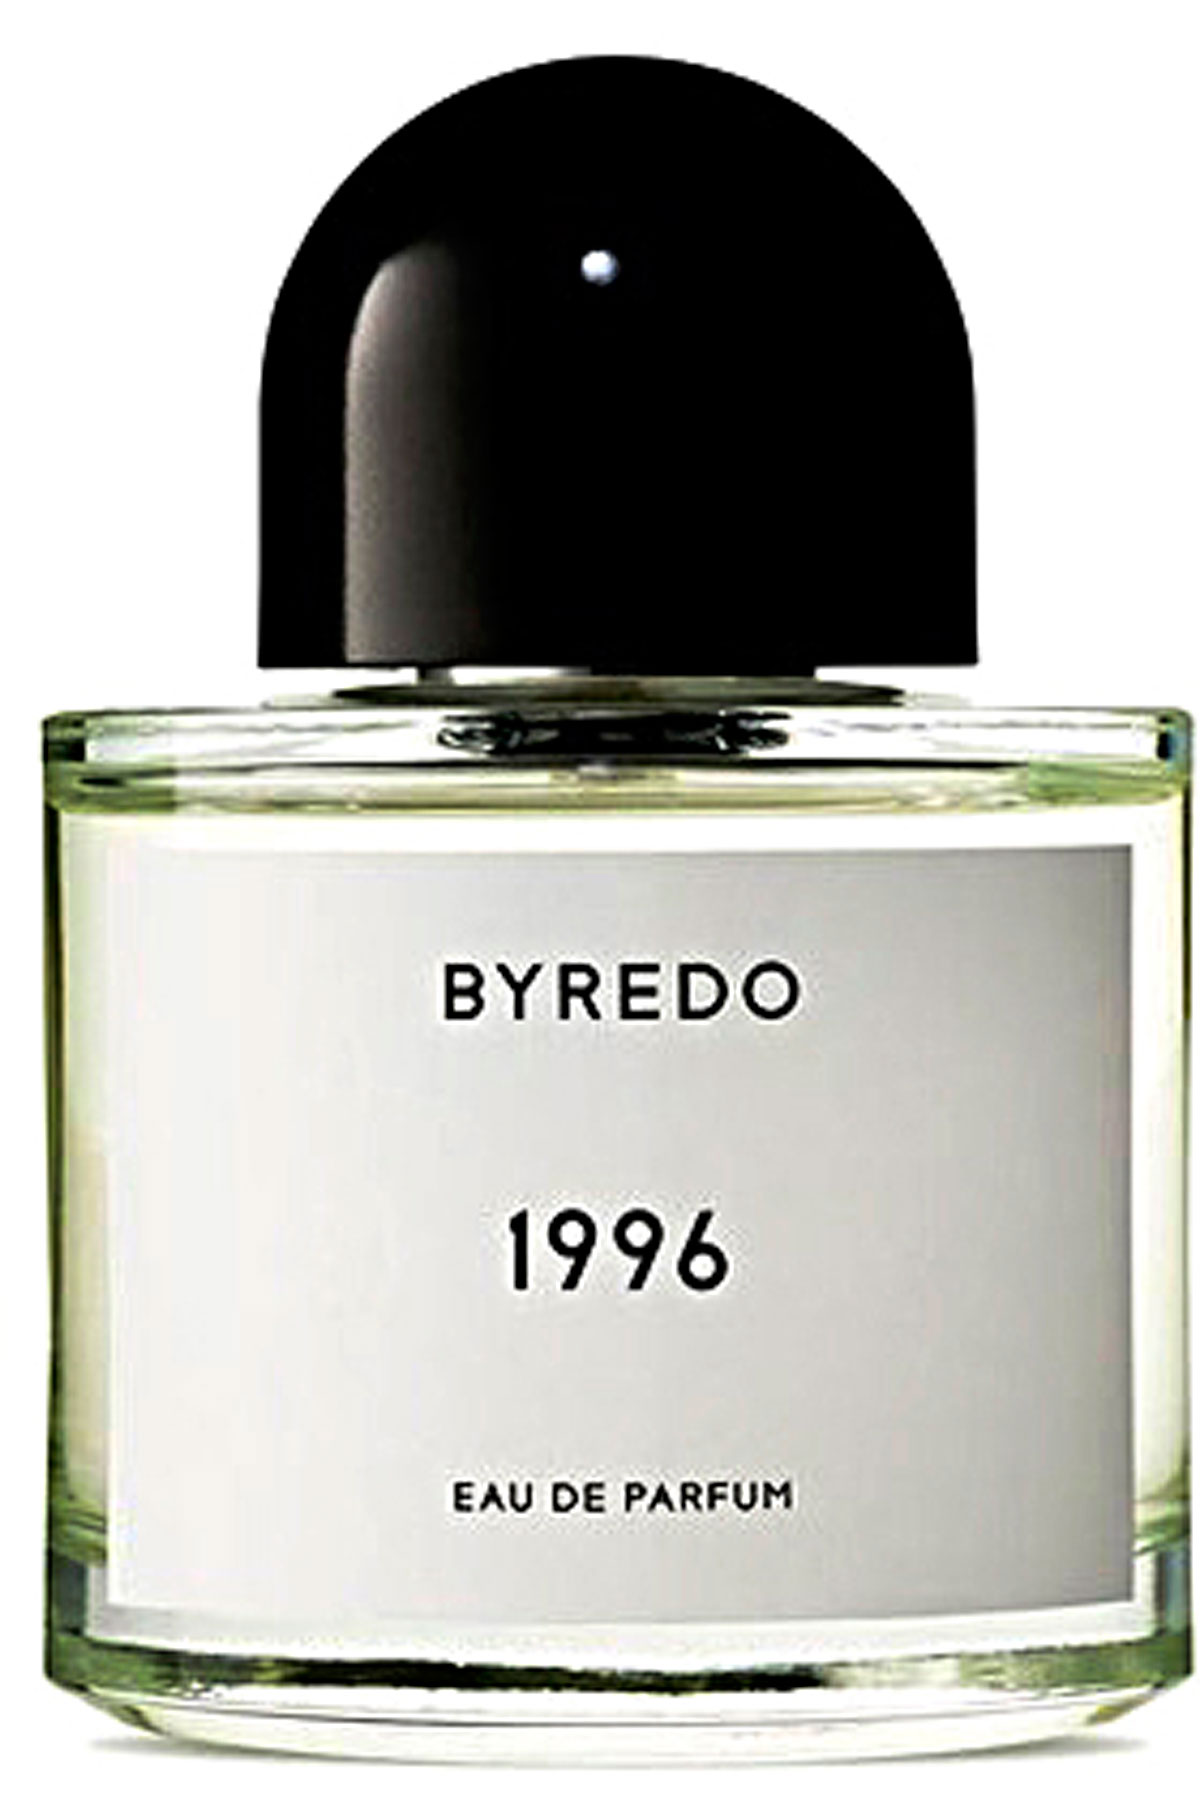 Byredo Fragrances for Women, 1996 - Eau De Parfum - 50 Ml, 2019, 50 ml